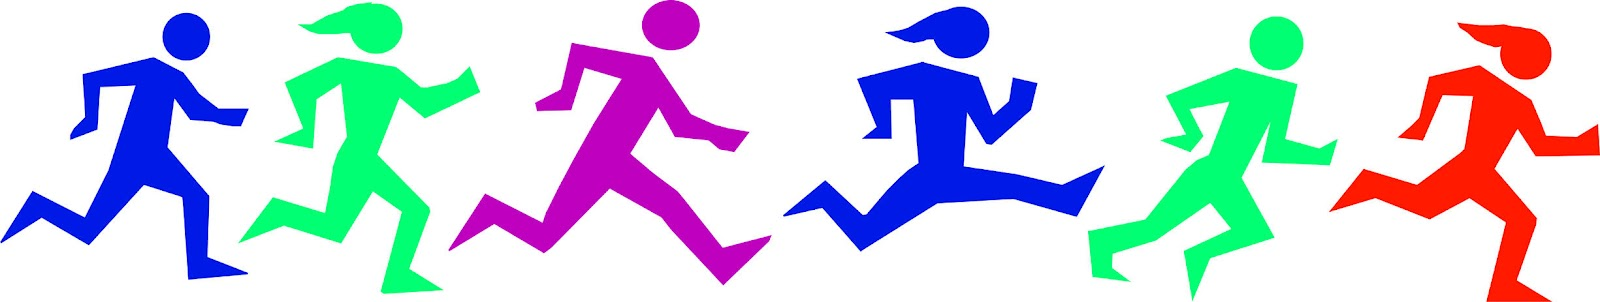 Running People Clipart - ClipArt Best